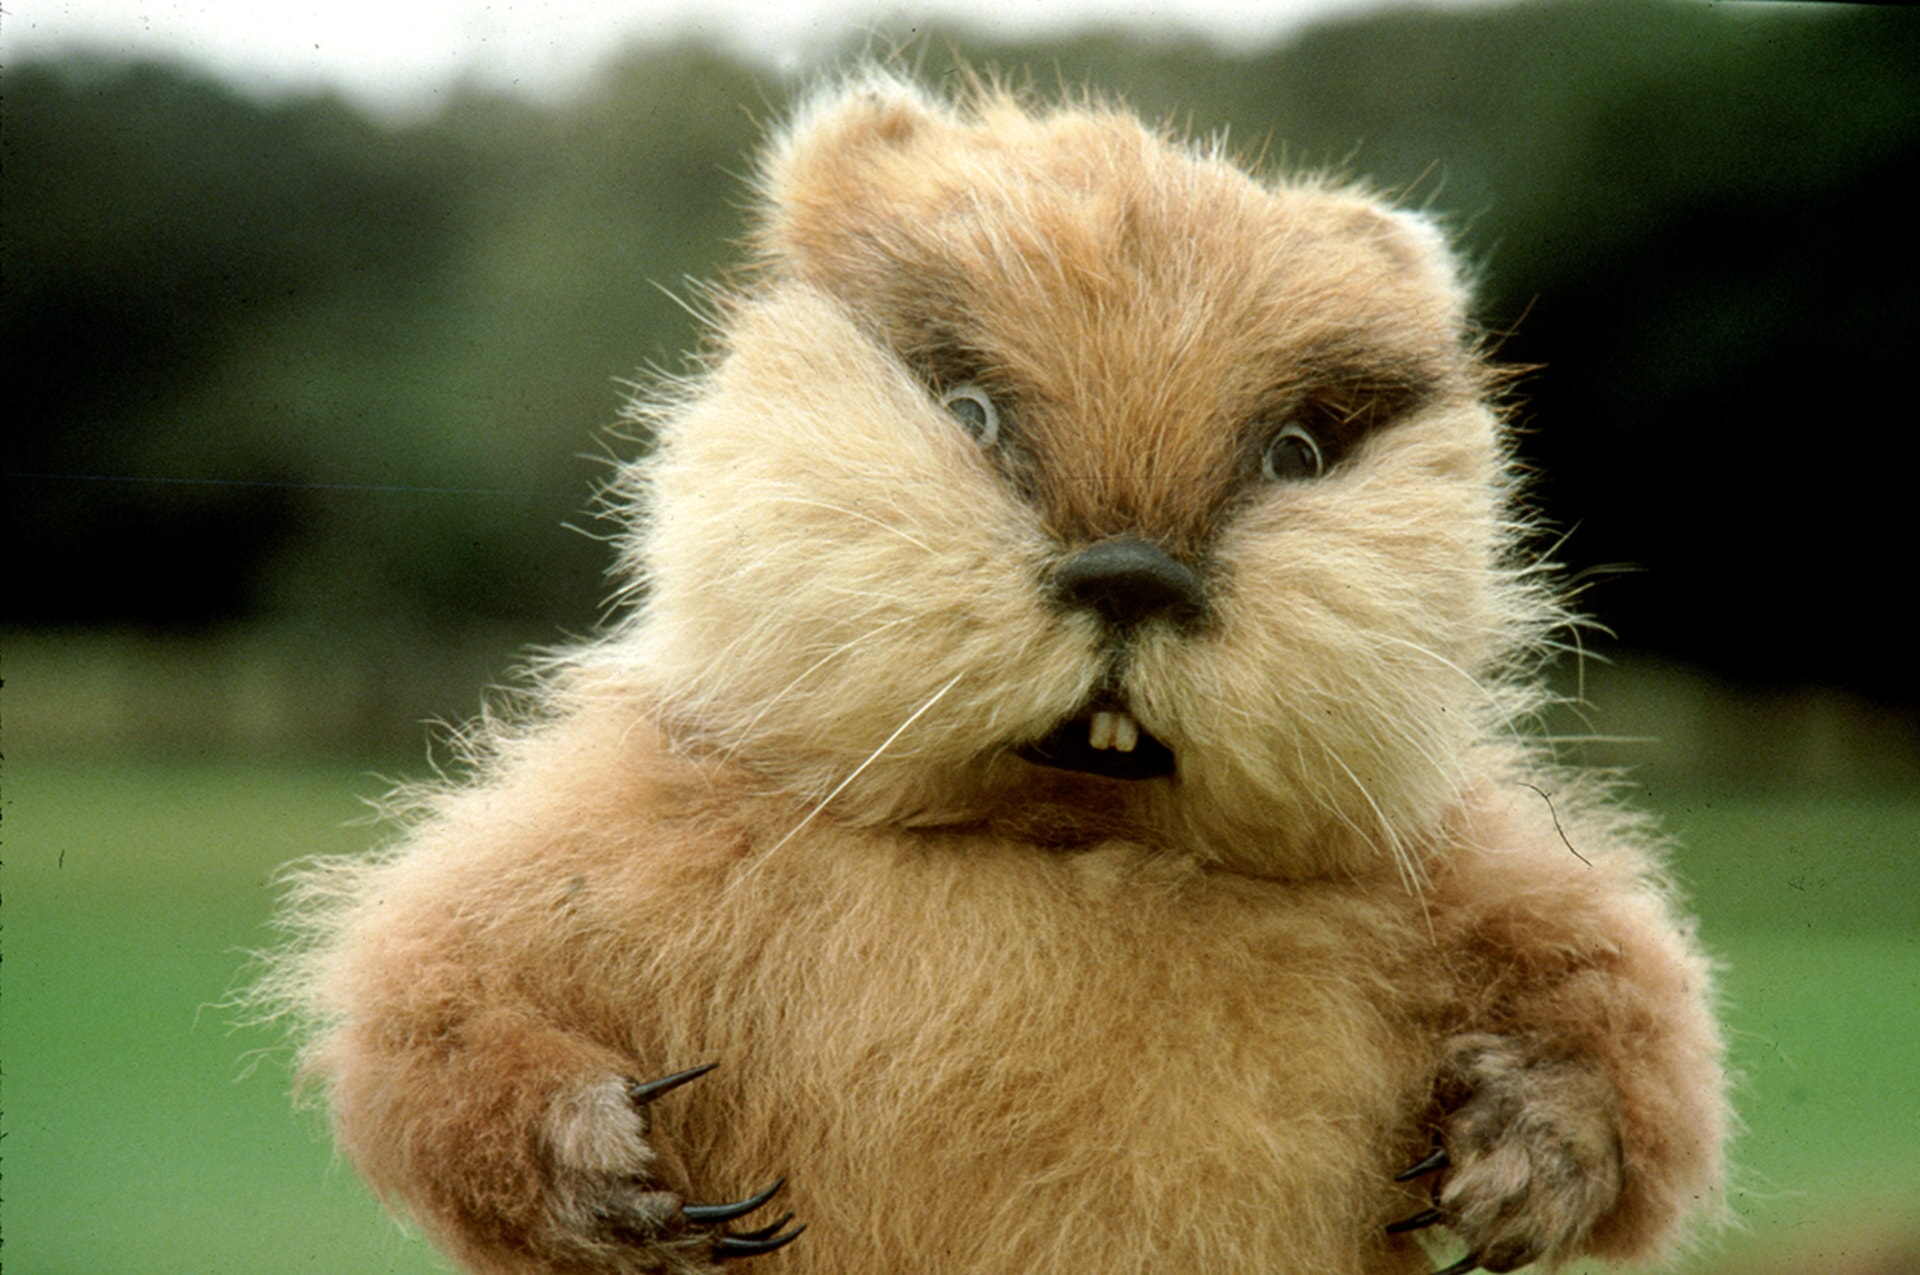 the devious gopher poses for the camera in caddyshack